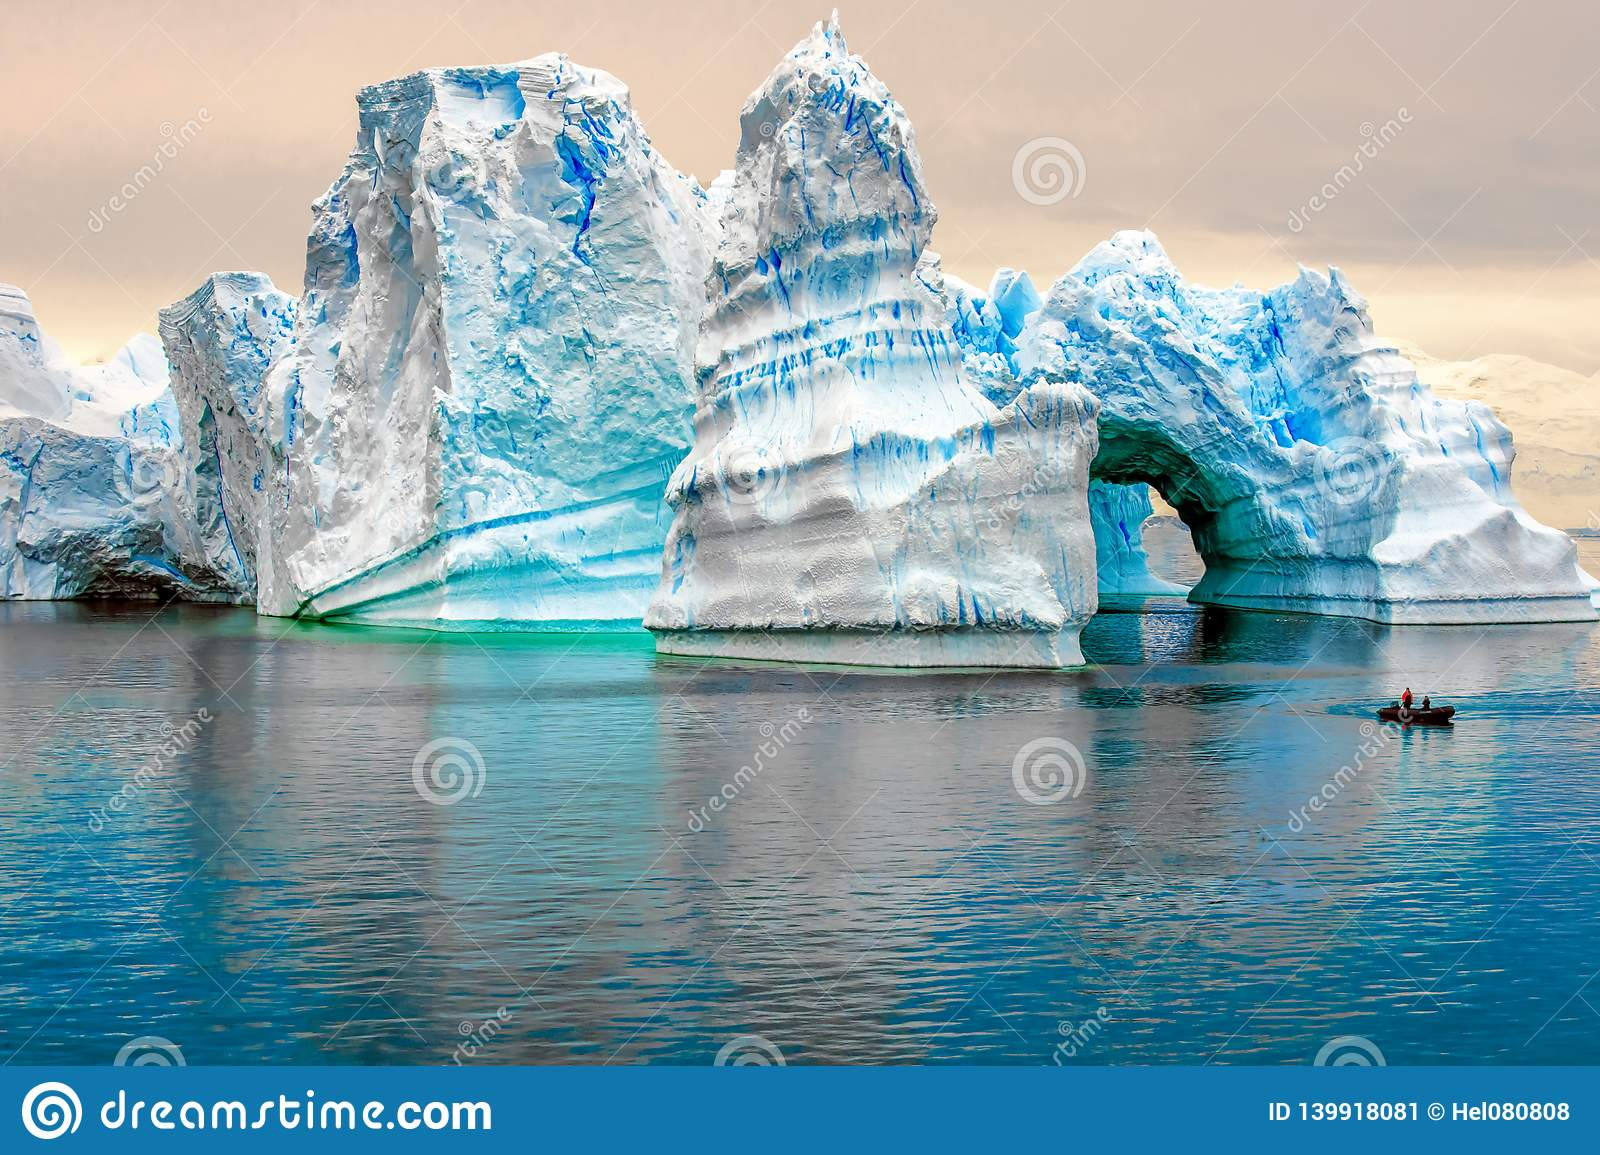 Iceberg in Antarctic, Ice Castle with Zodiac in Front, Iceberg sculptured like fairytale castle